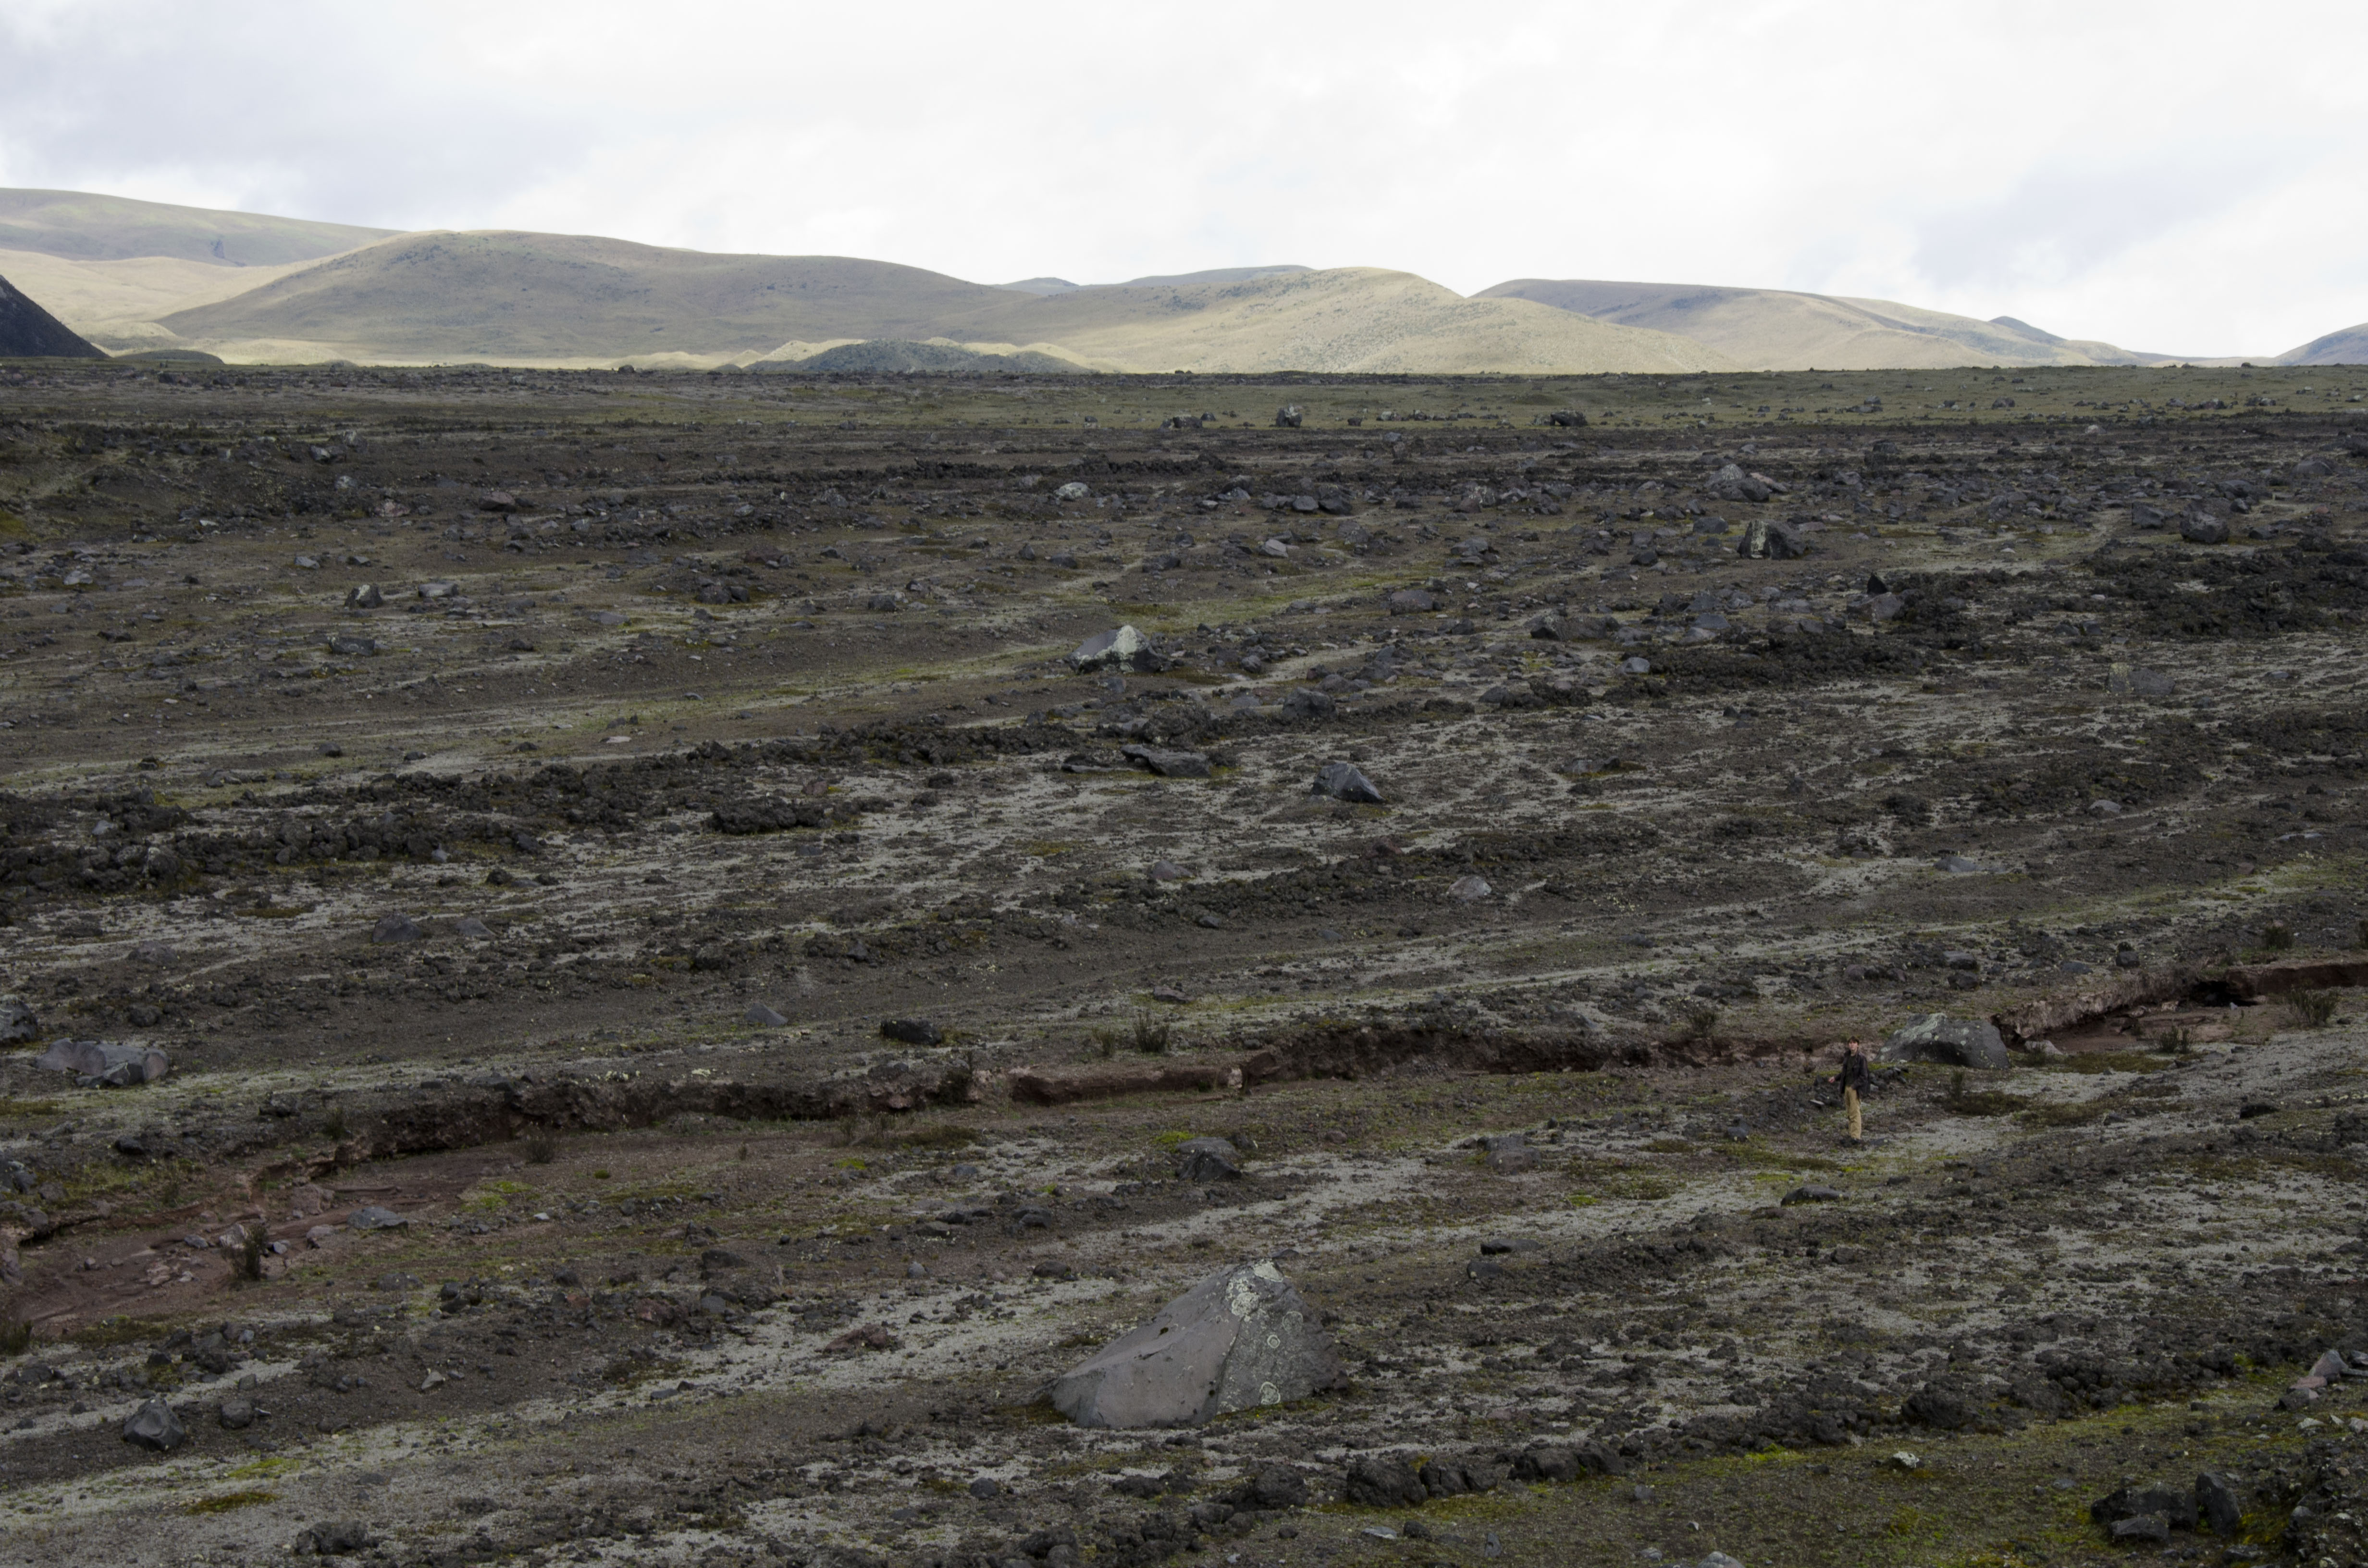 Lava flows on the backside of the park (high clearance vehicle recommended)